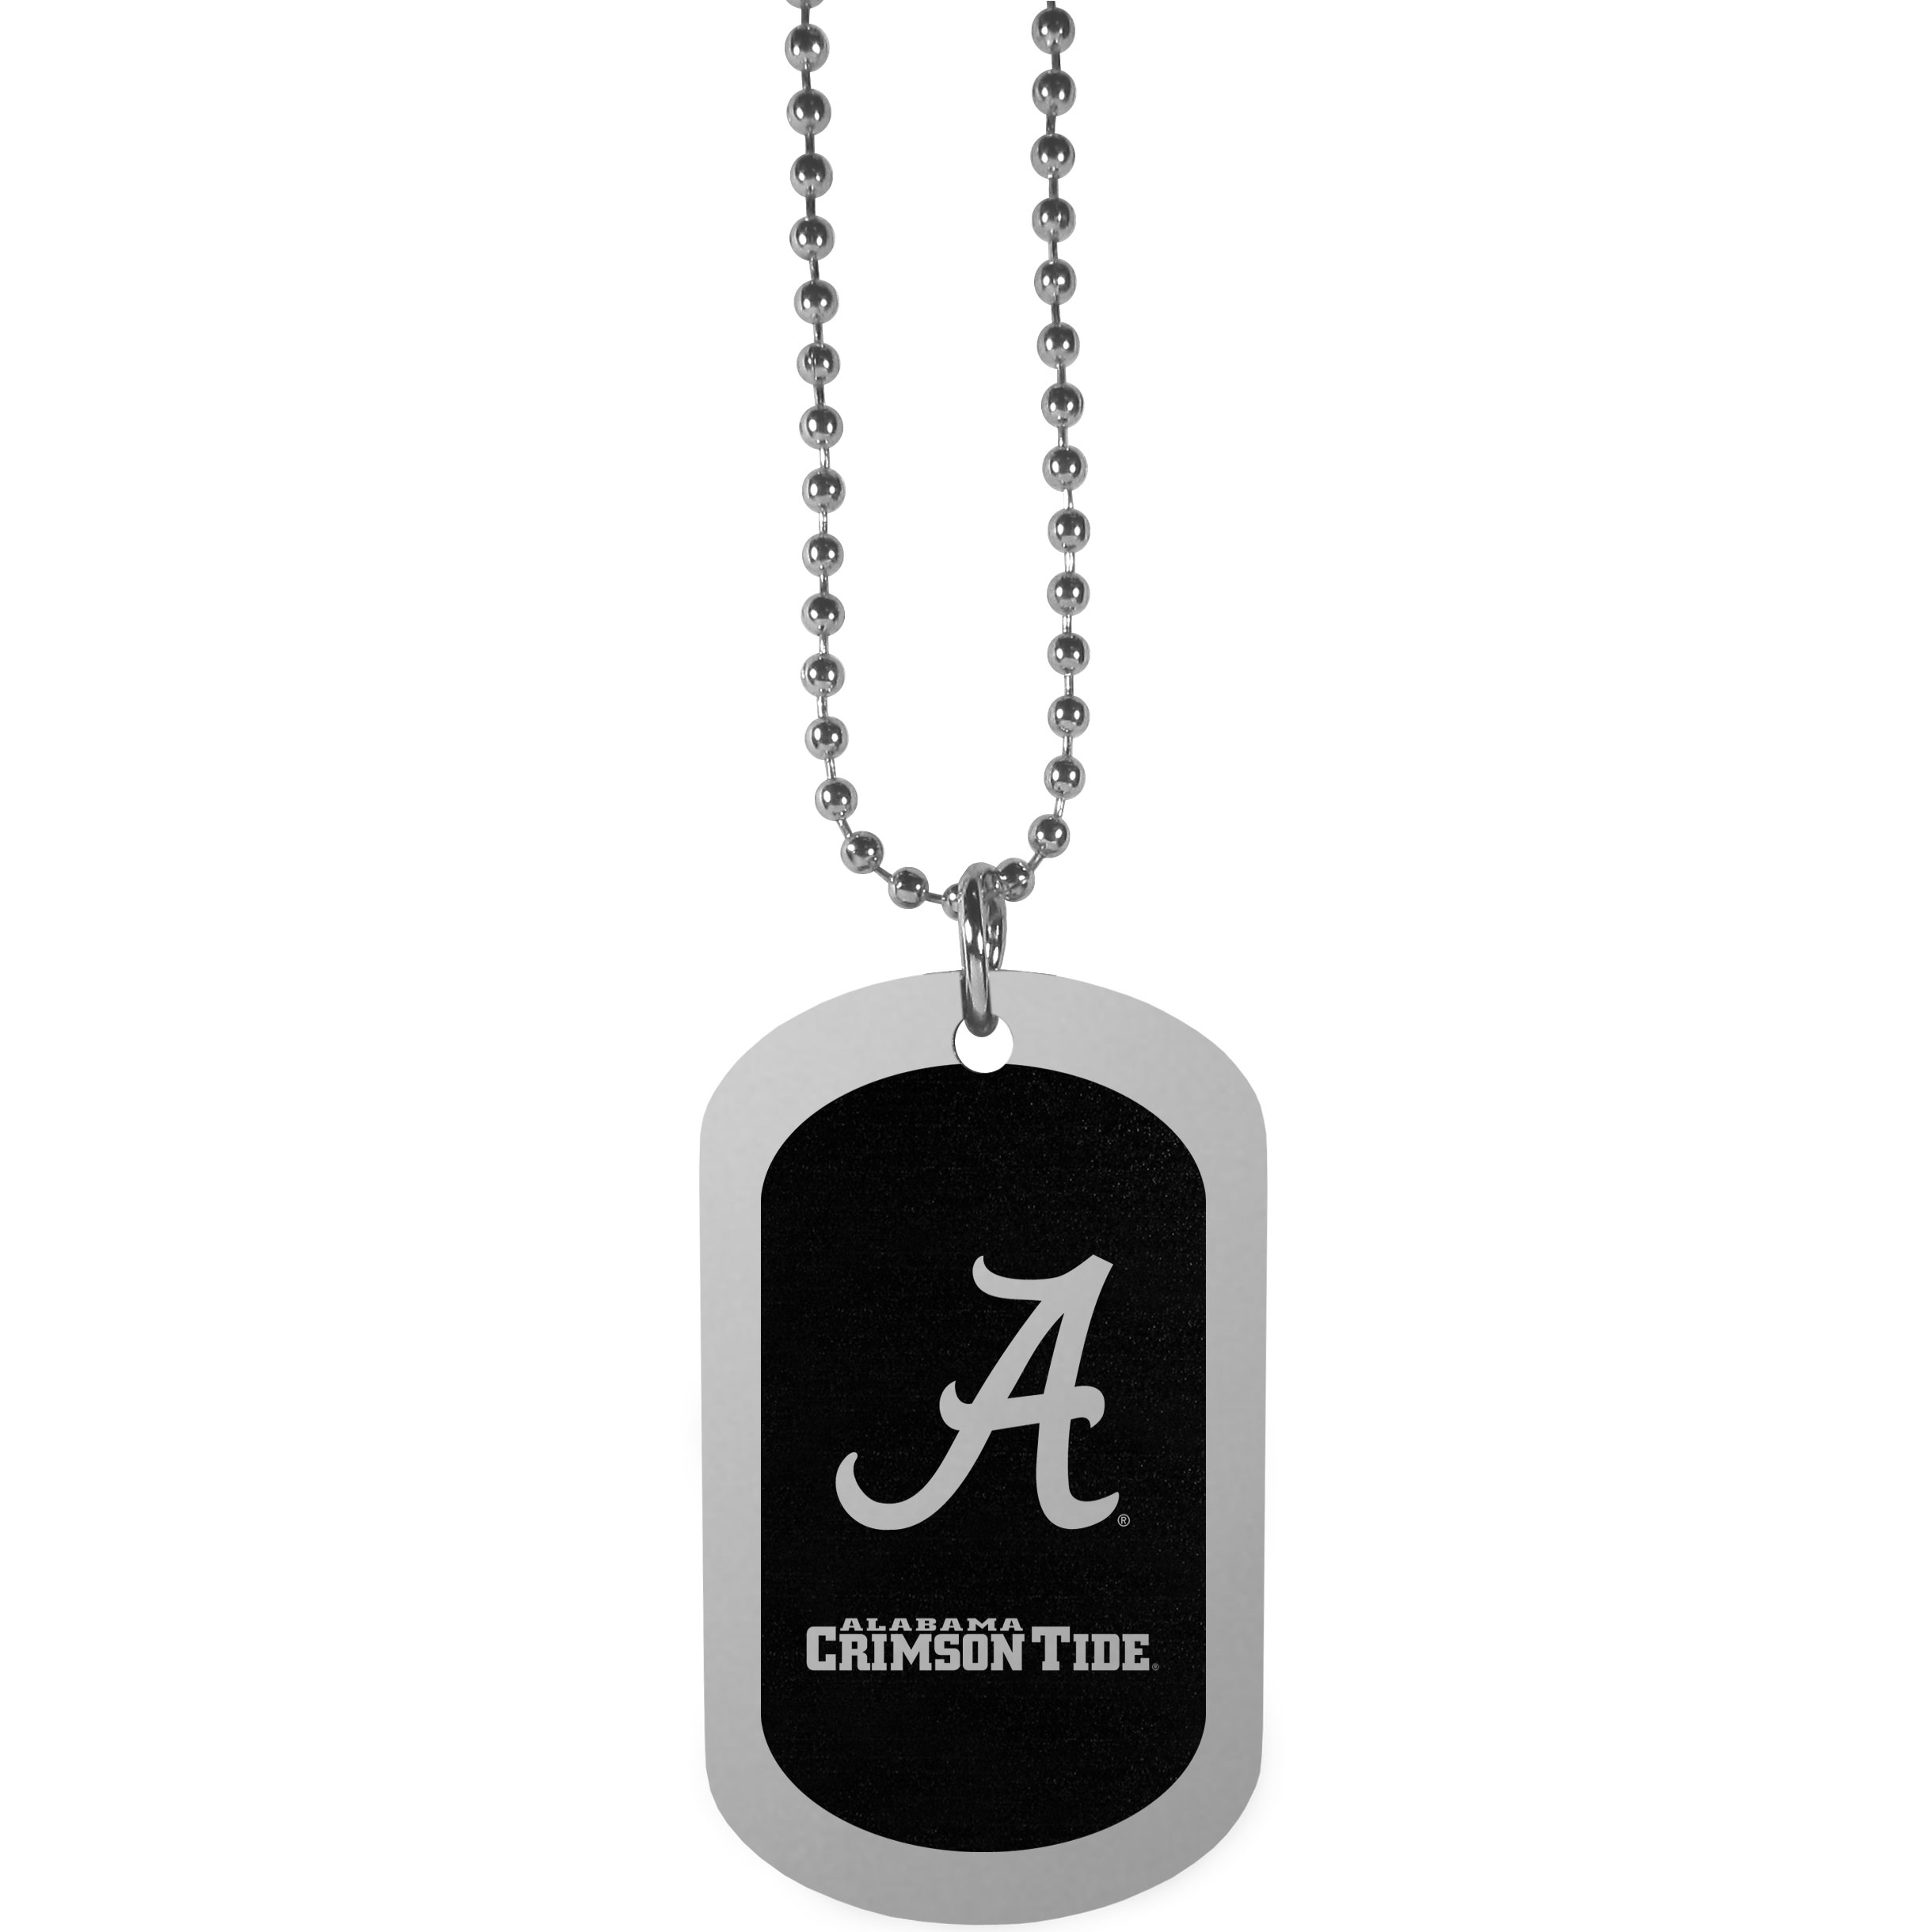 Alabama Crimson Tide Chrome Tag Necklace - Dog tag necklaces are a fashion statement that is here to stay. The sporty version of the classic tag features a black printed over a high polish tag to create a bold and sporty look. The tag comes on a 26 inch ball chain with a ball and joint clasp. Any Alabama Crimson Tide would be proud to wear this attractive fashion accessory.